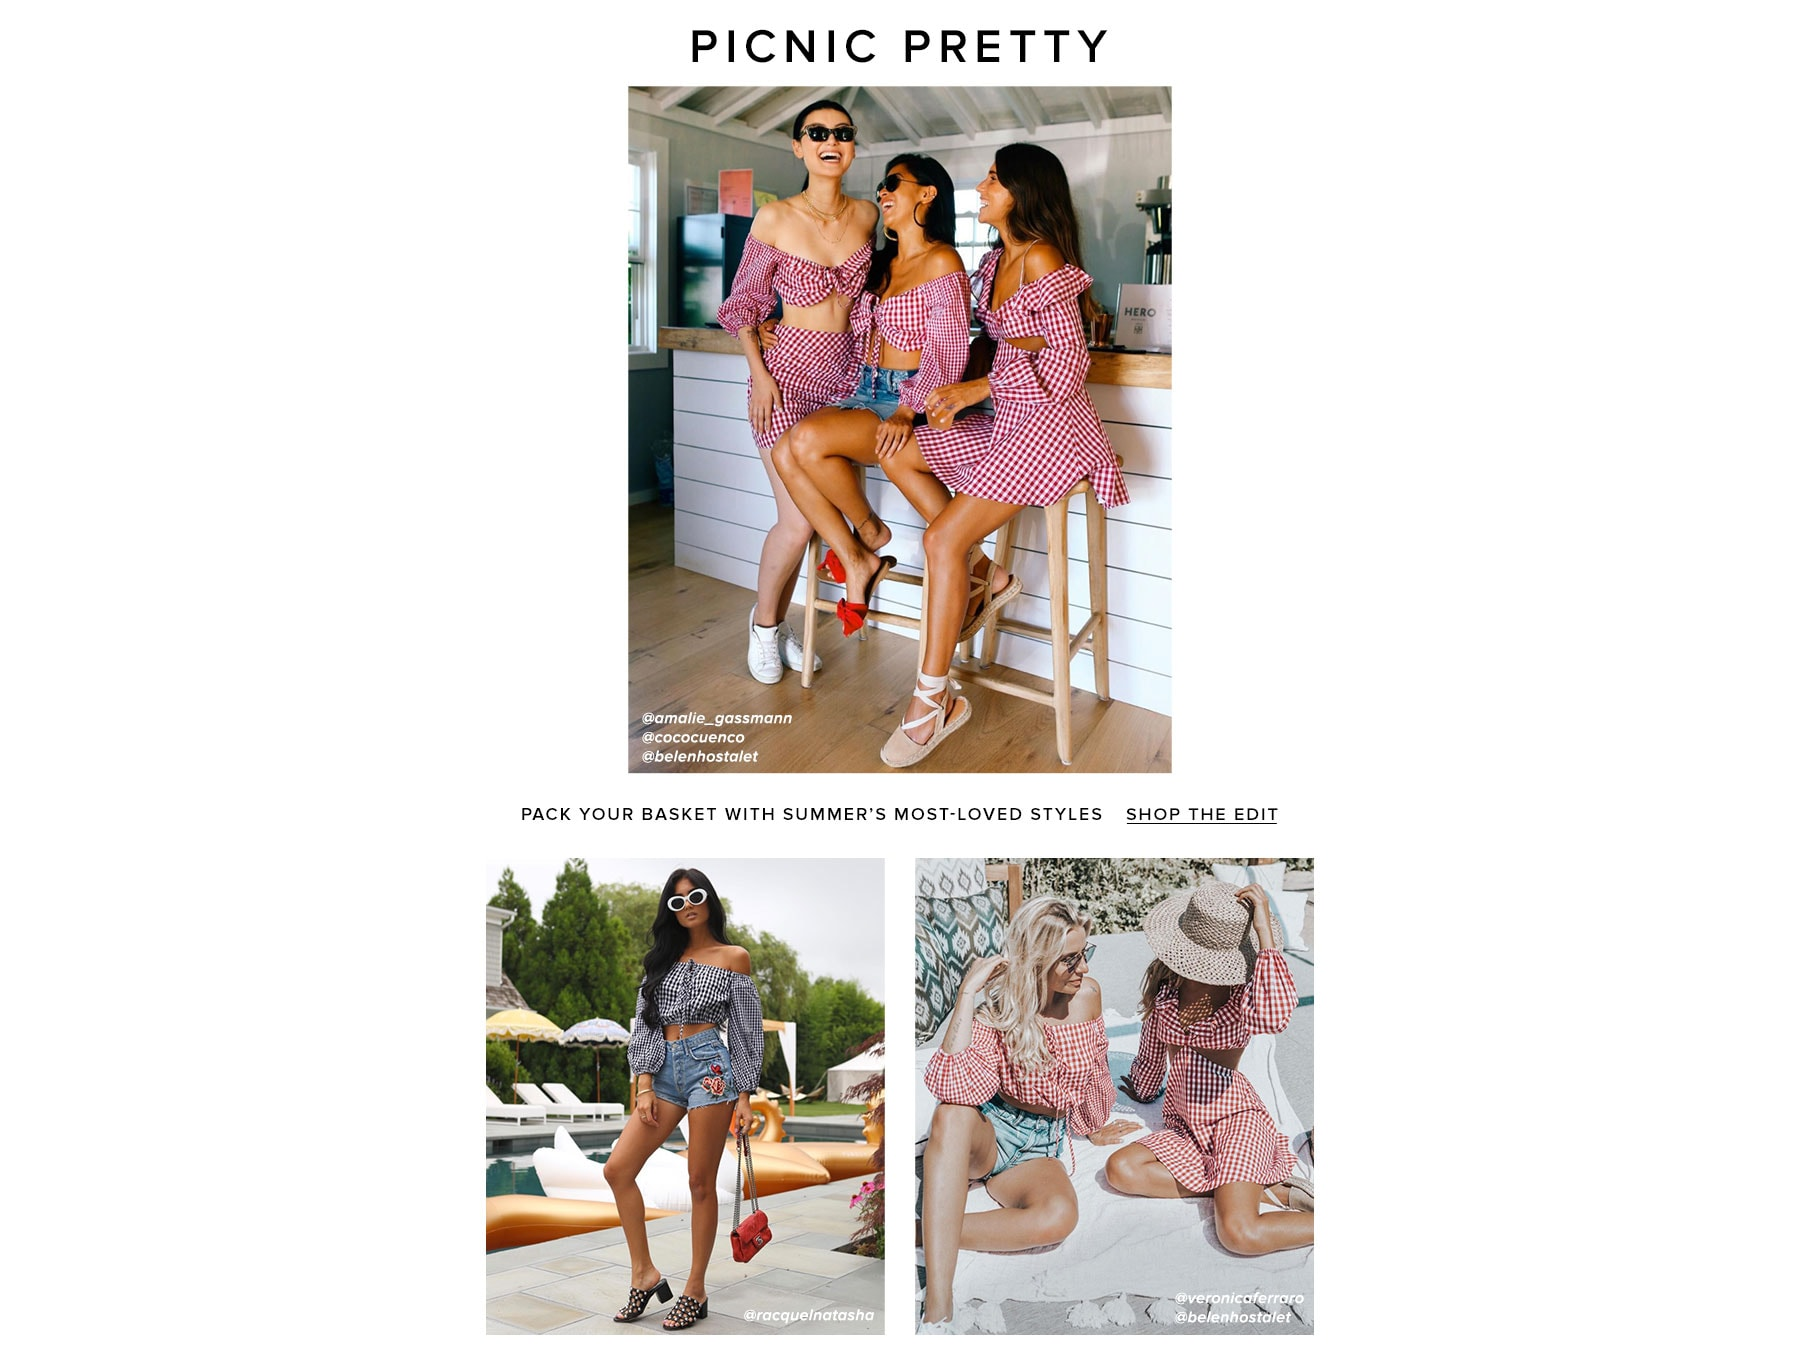 Picnic Pretty. Pack your basket with summer's most-loved styles. Shop the edit.